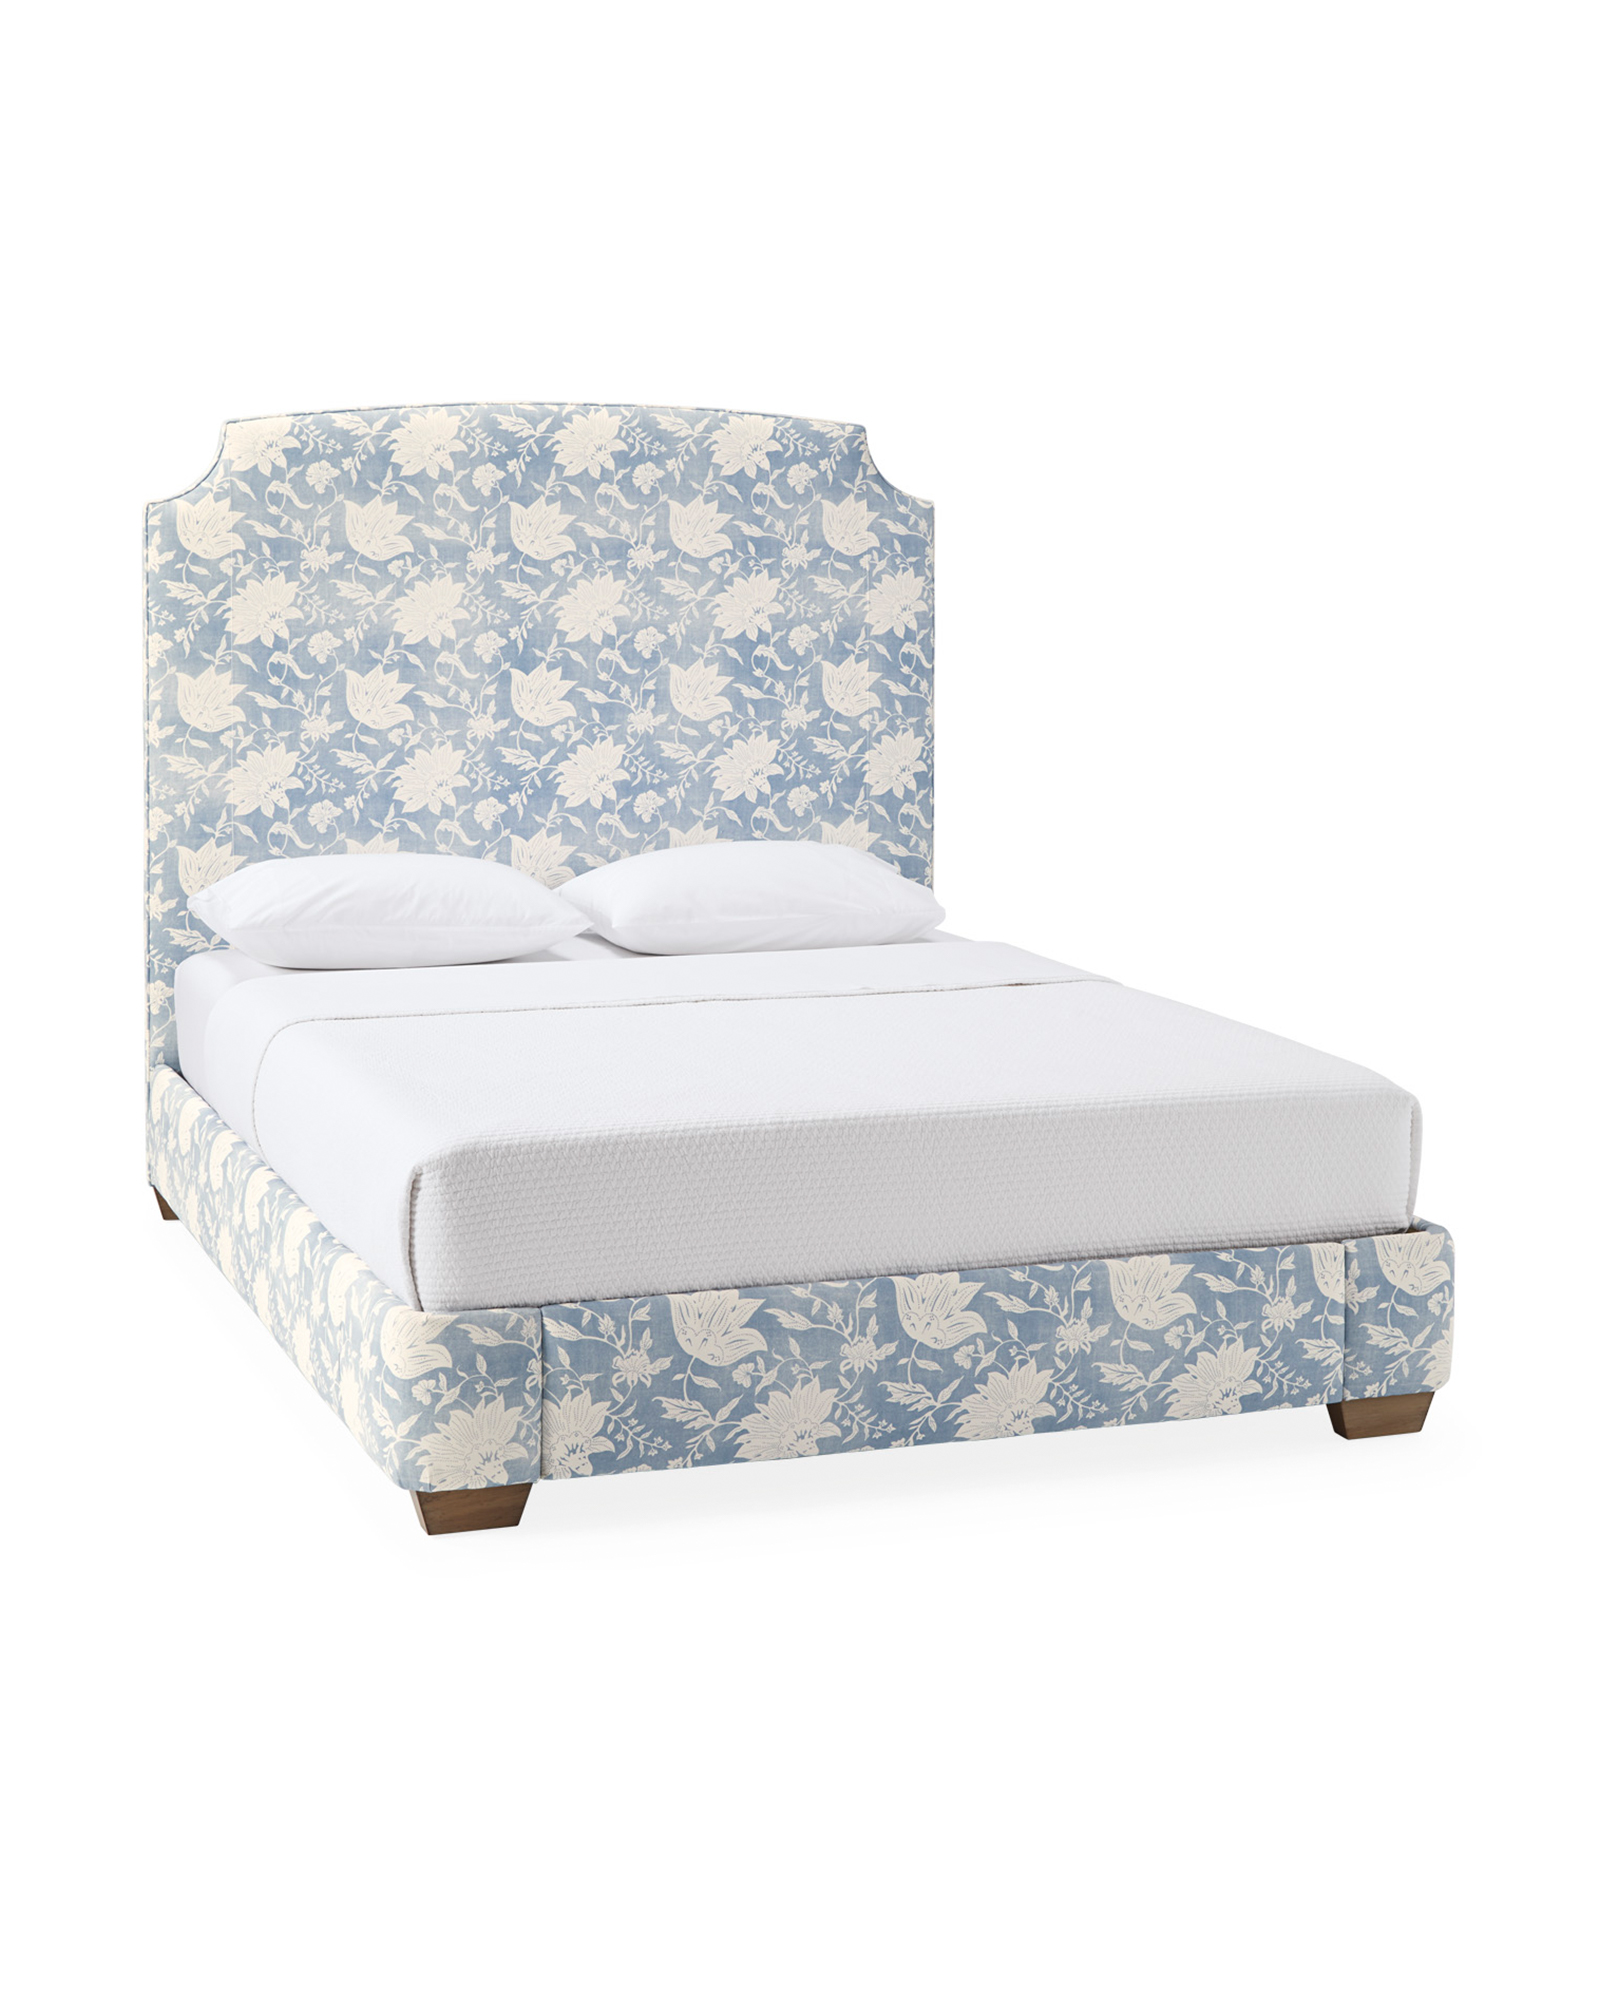 Tall Fillmore Bed - Deauville Coastal Blue,